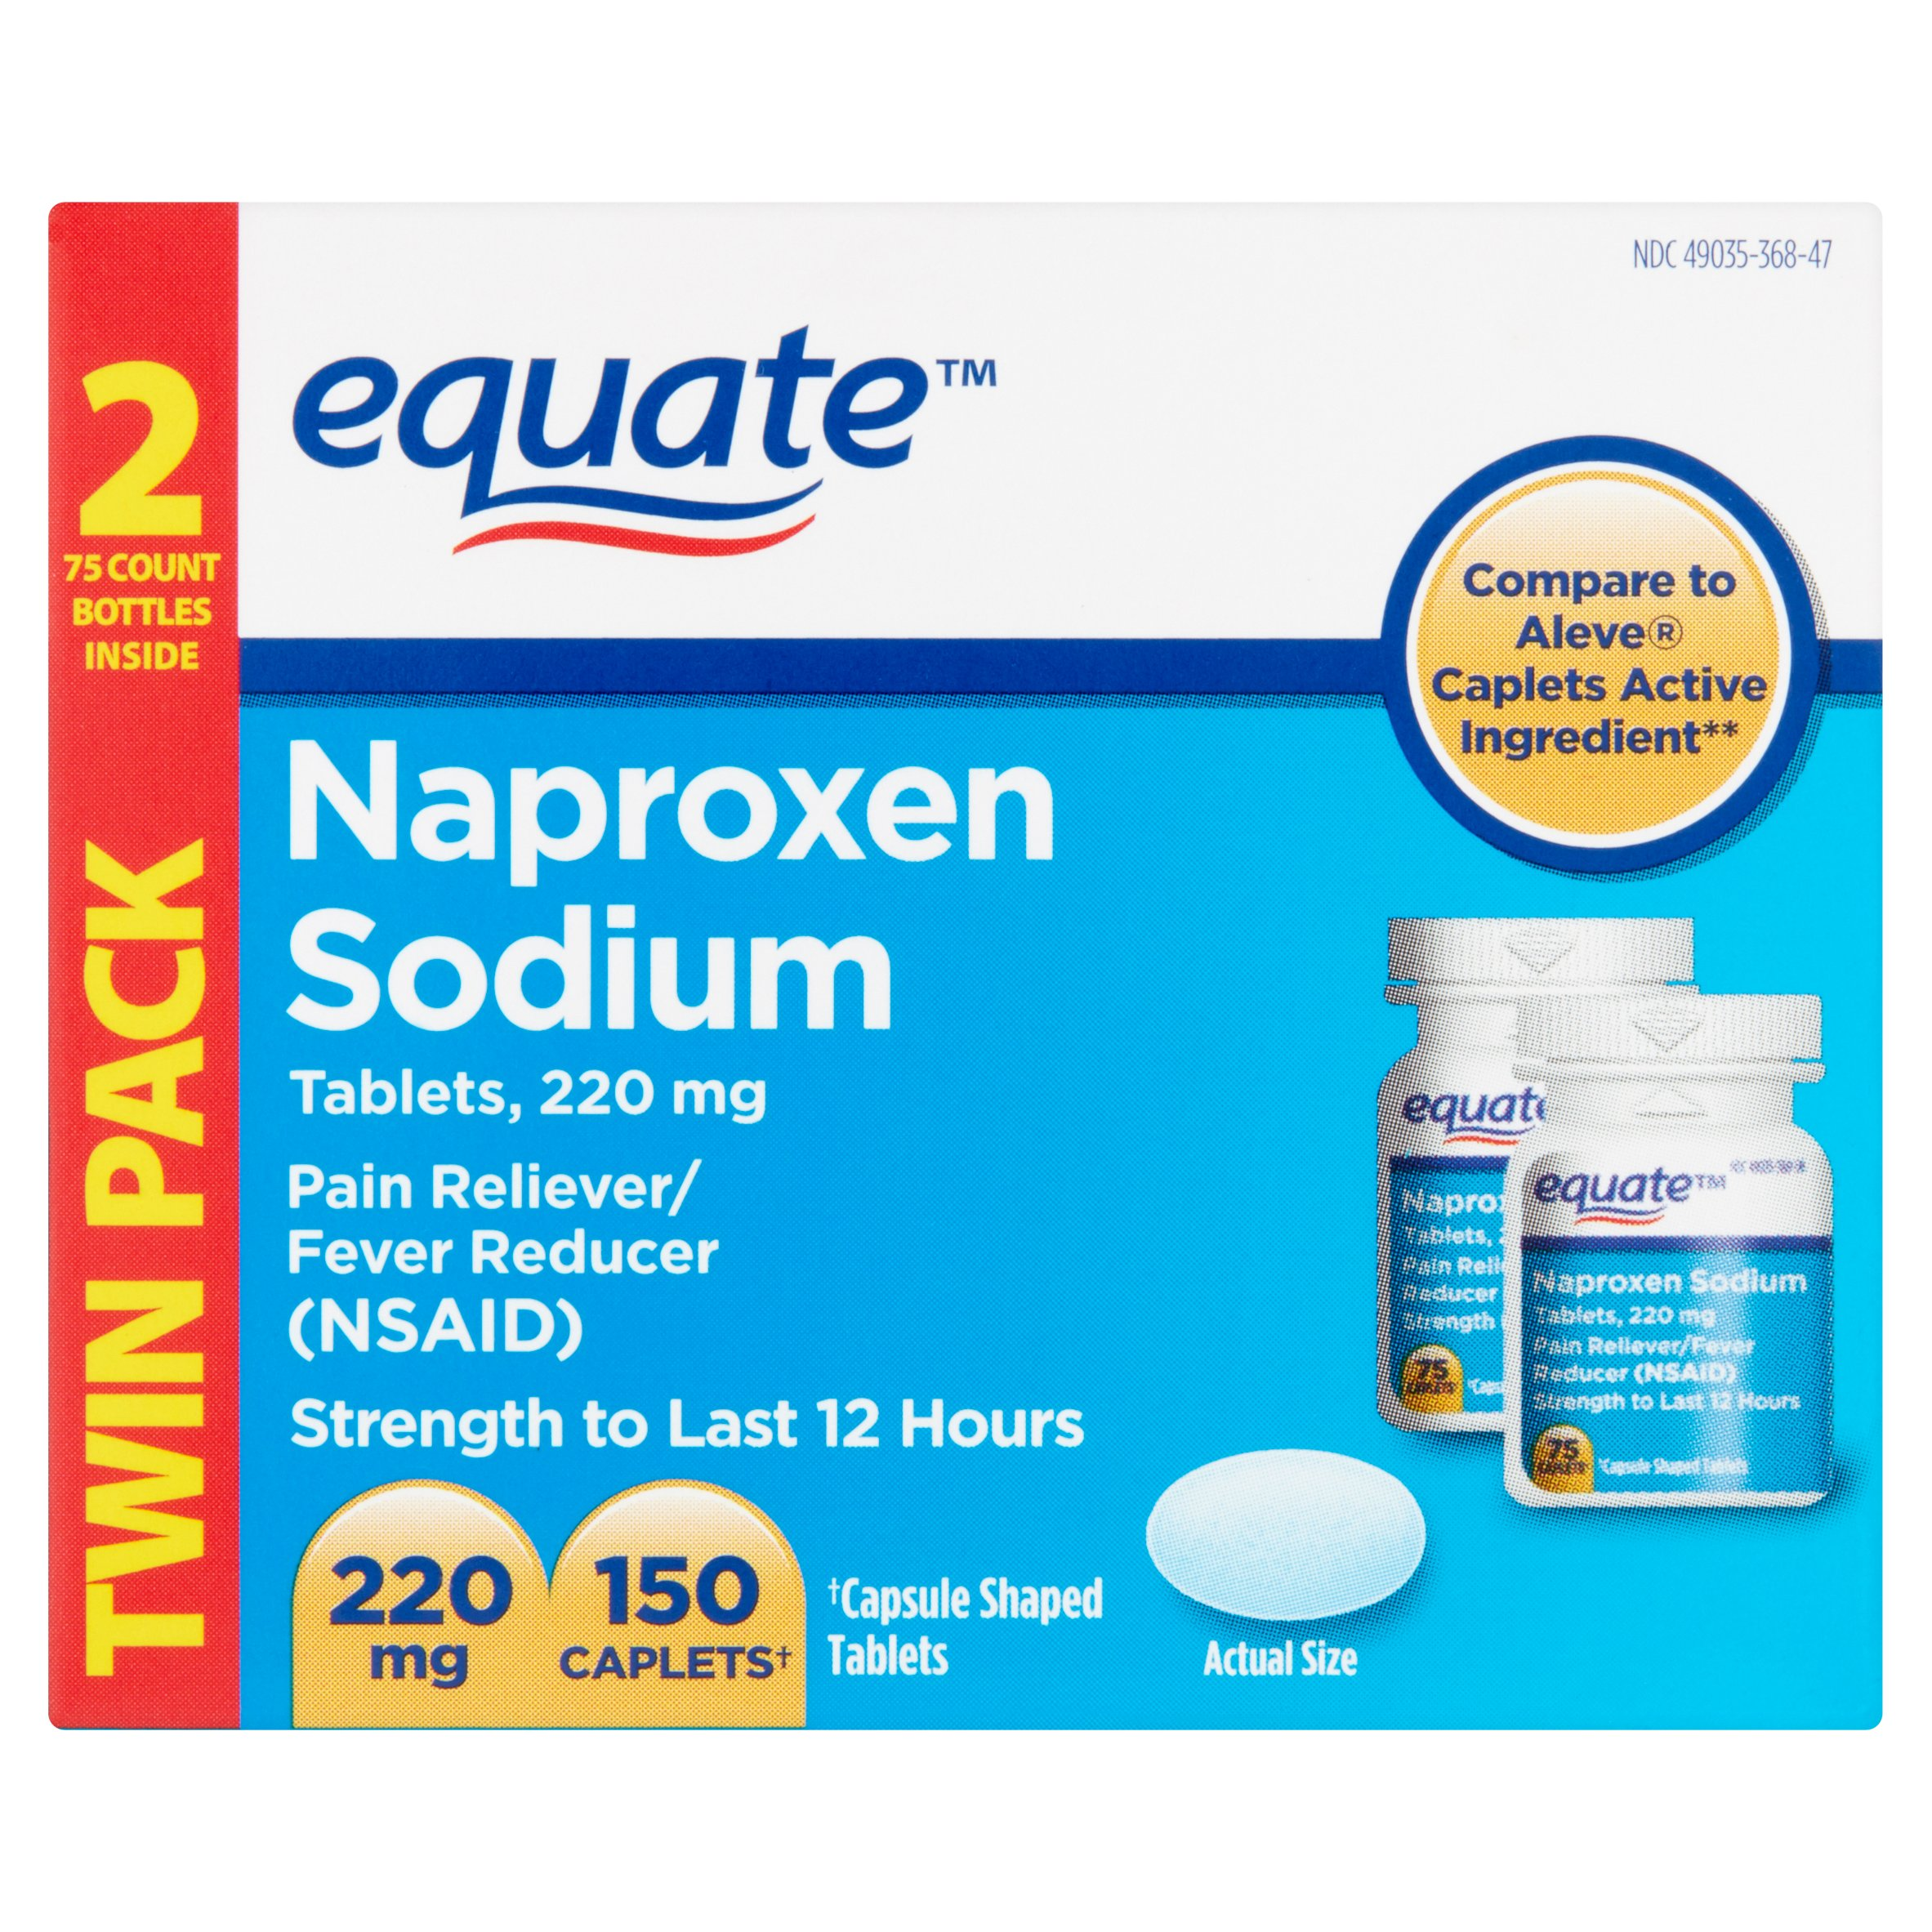 Naproxen 40 mg.doc - Equate Naproxen Sodium Pain Reliever Fever Reducer Caplets 220 Mg 75 Ct